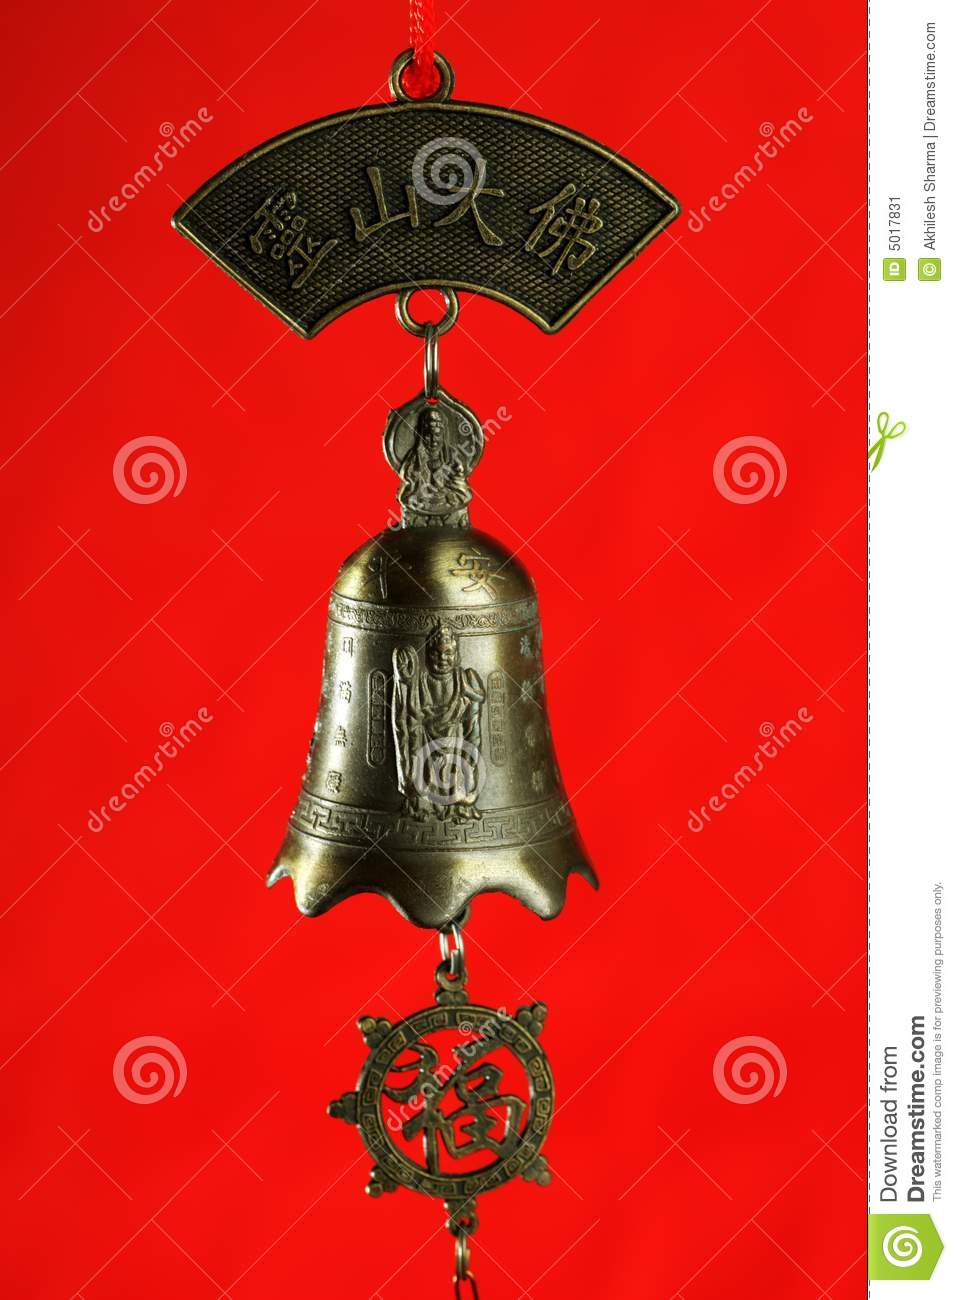 asian singles in calabash Find calabash stock images in hd and millions of other royalty-free stock photos, illustrations, and vectors in the shutterstock collection thousands of new, high-quality pictures added.